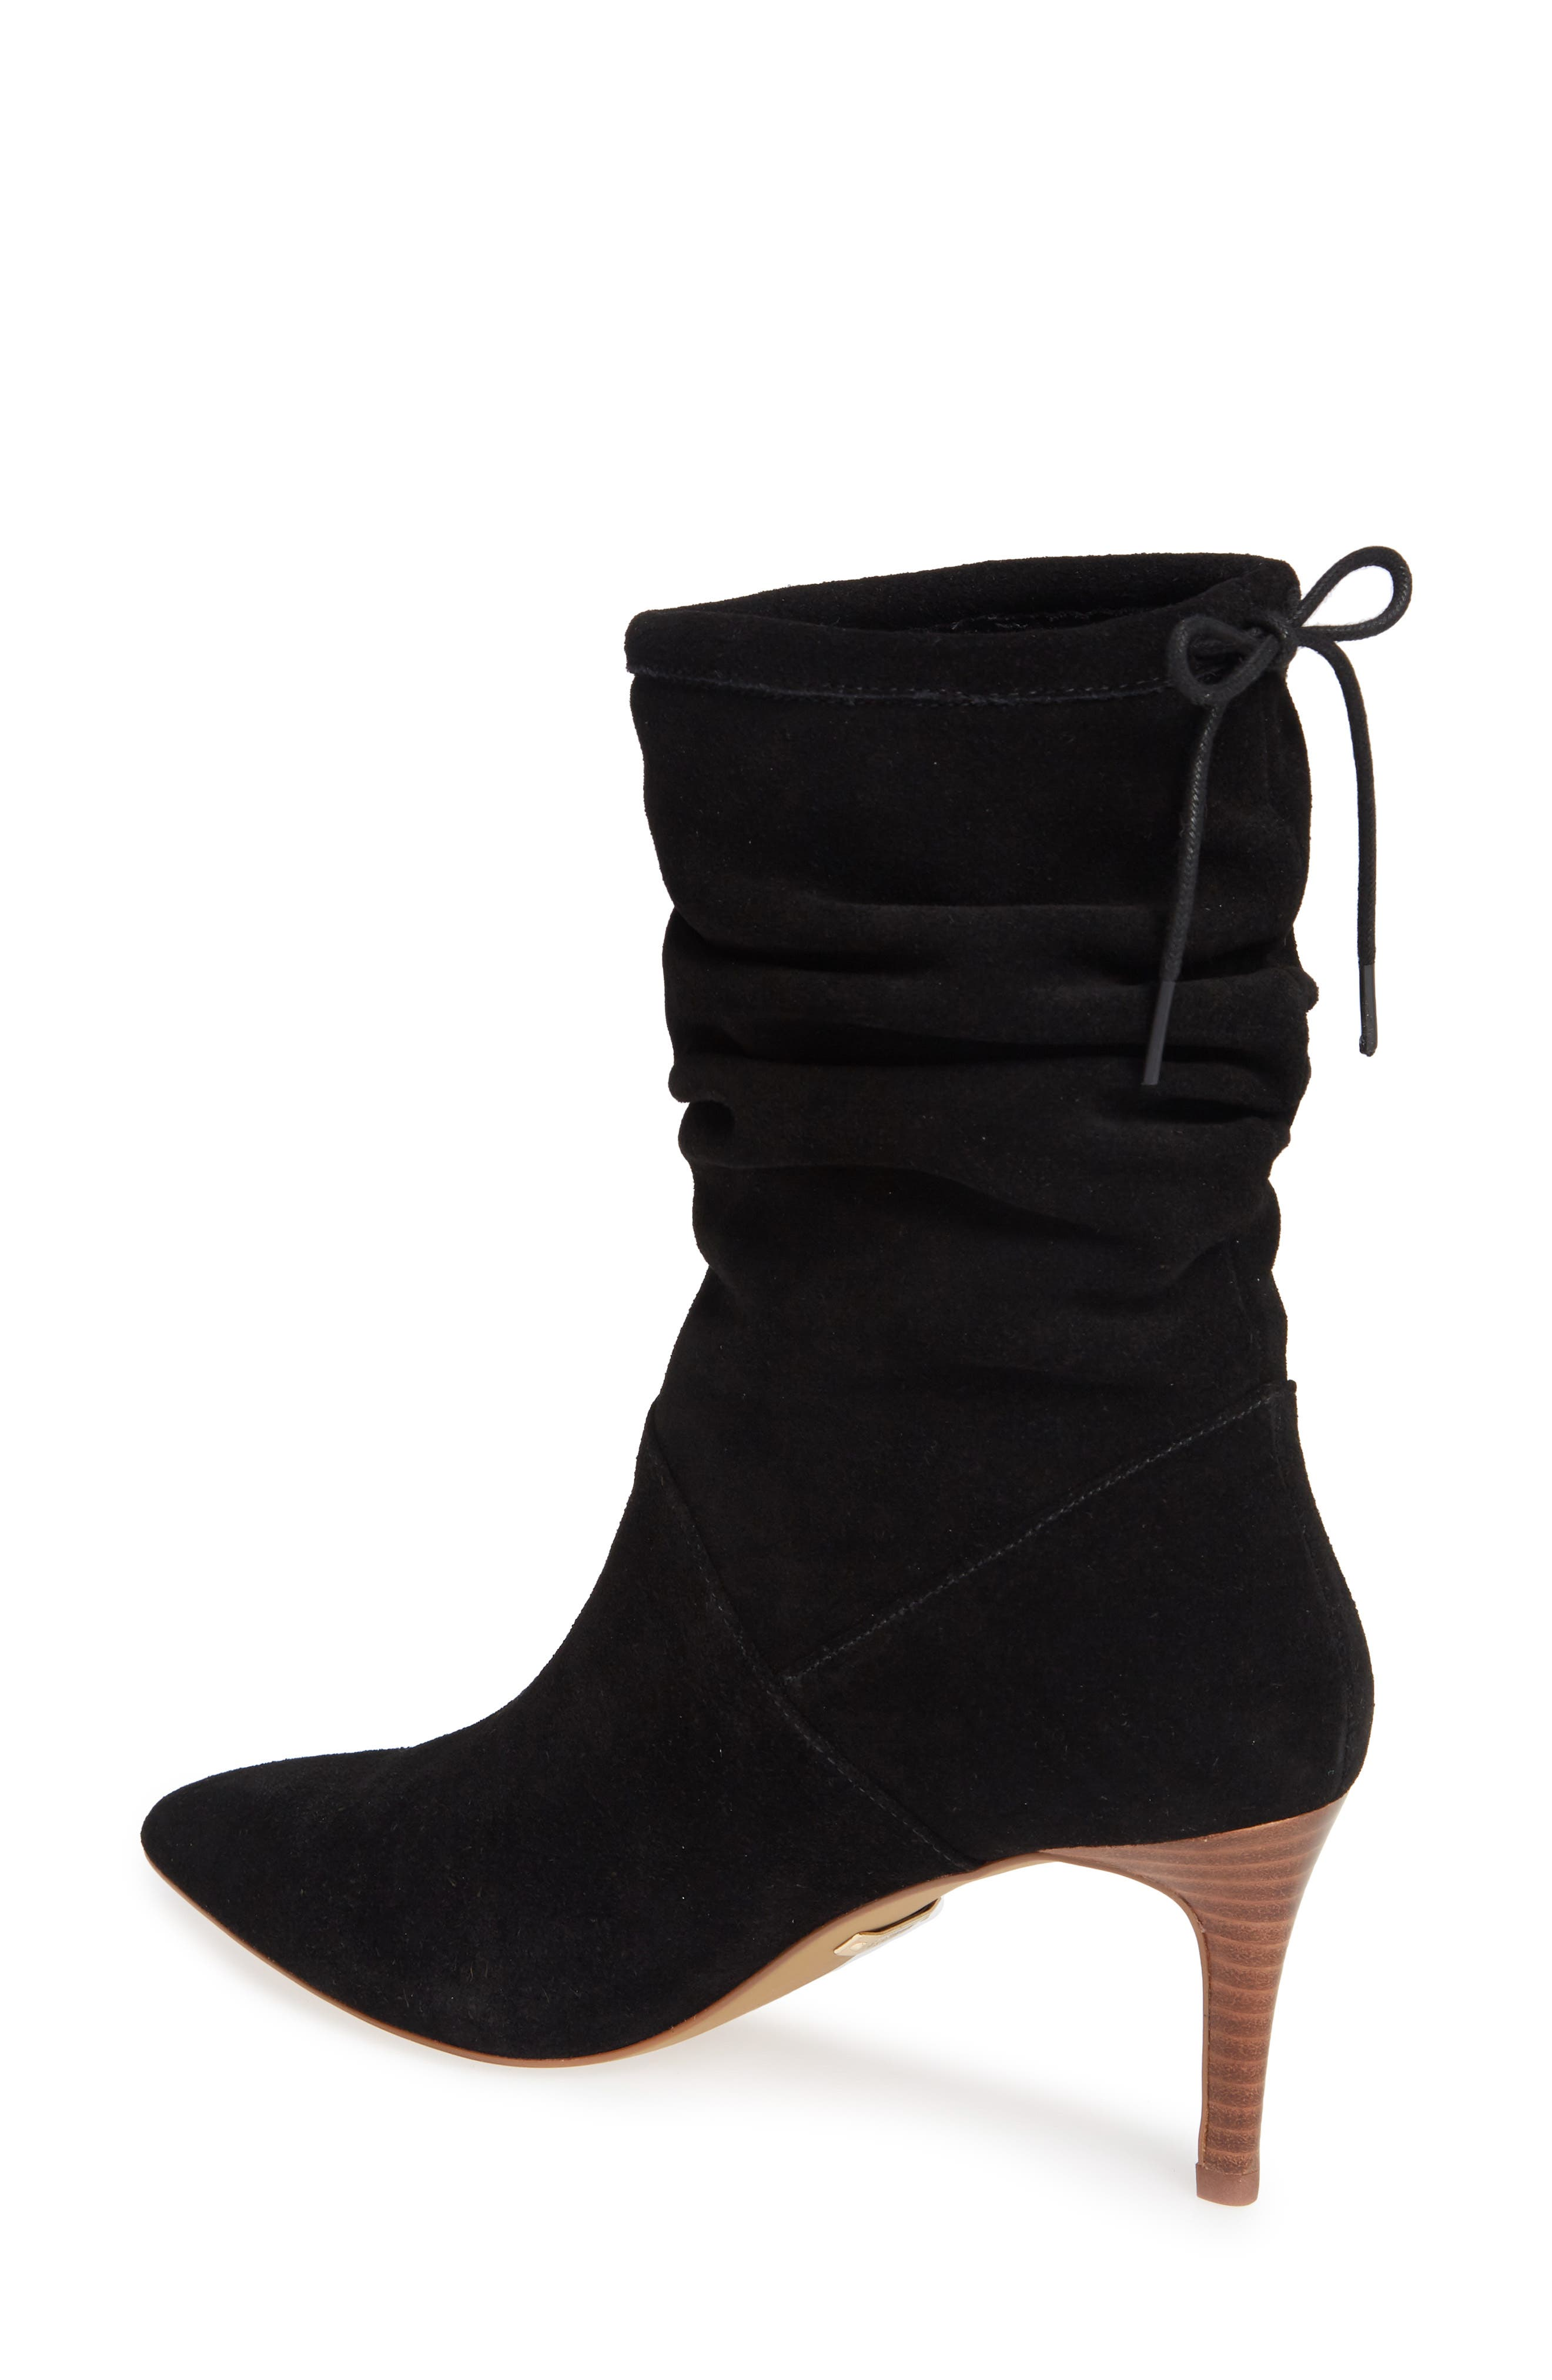 Natthan Slouchy Bootie,                             Alternate thumbnail 2, color,                             BLACK SUEDE